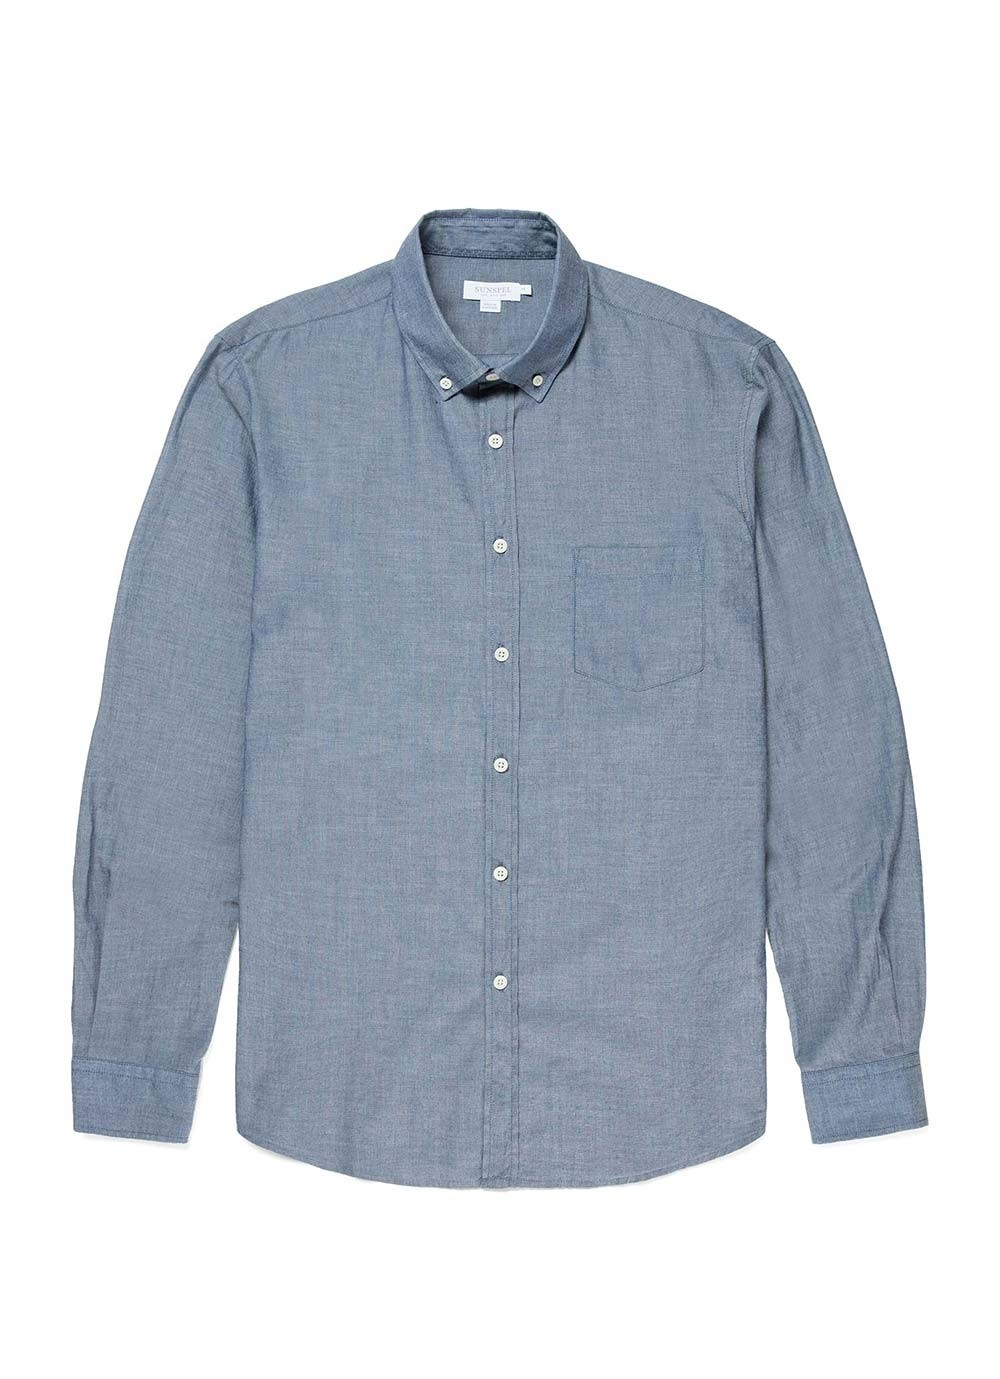 Sunspel chambray shirt - £105 - Perfect for spring, and easy to wear with anything, at any time.